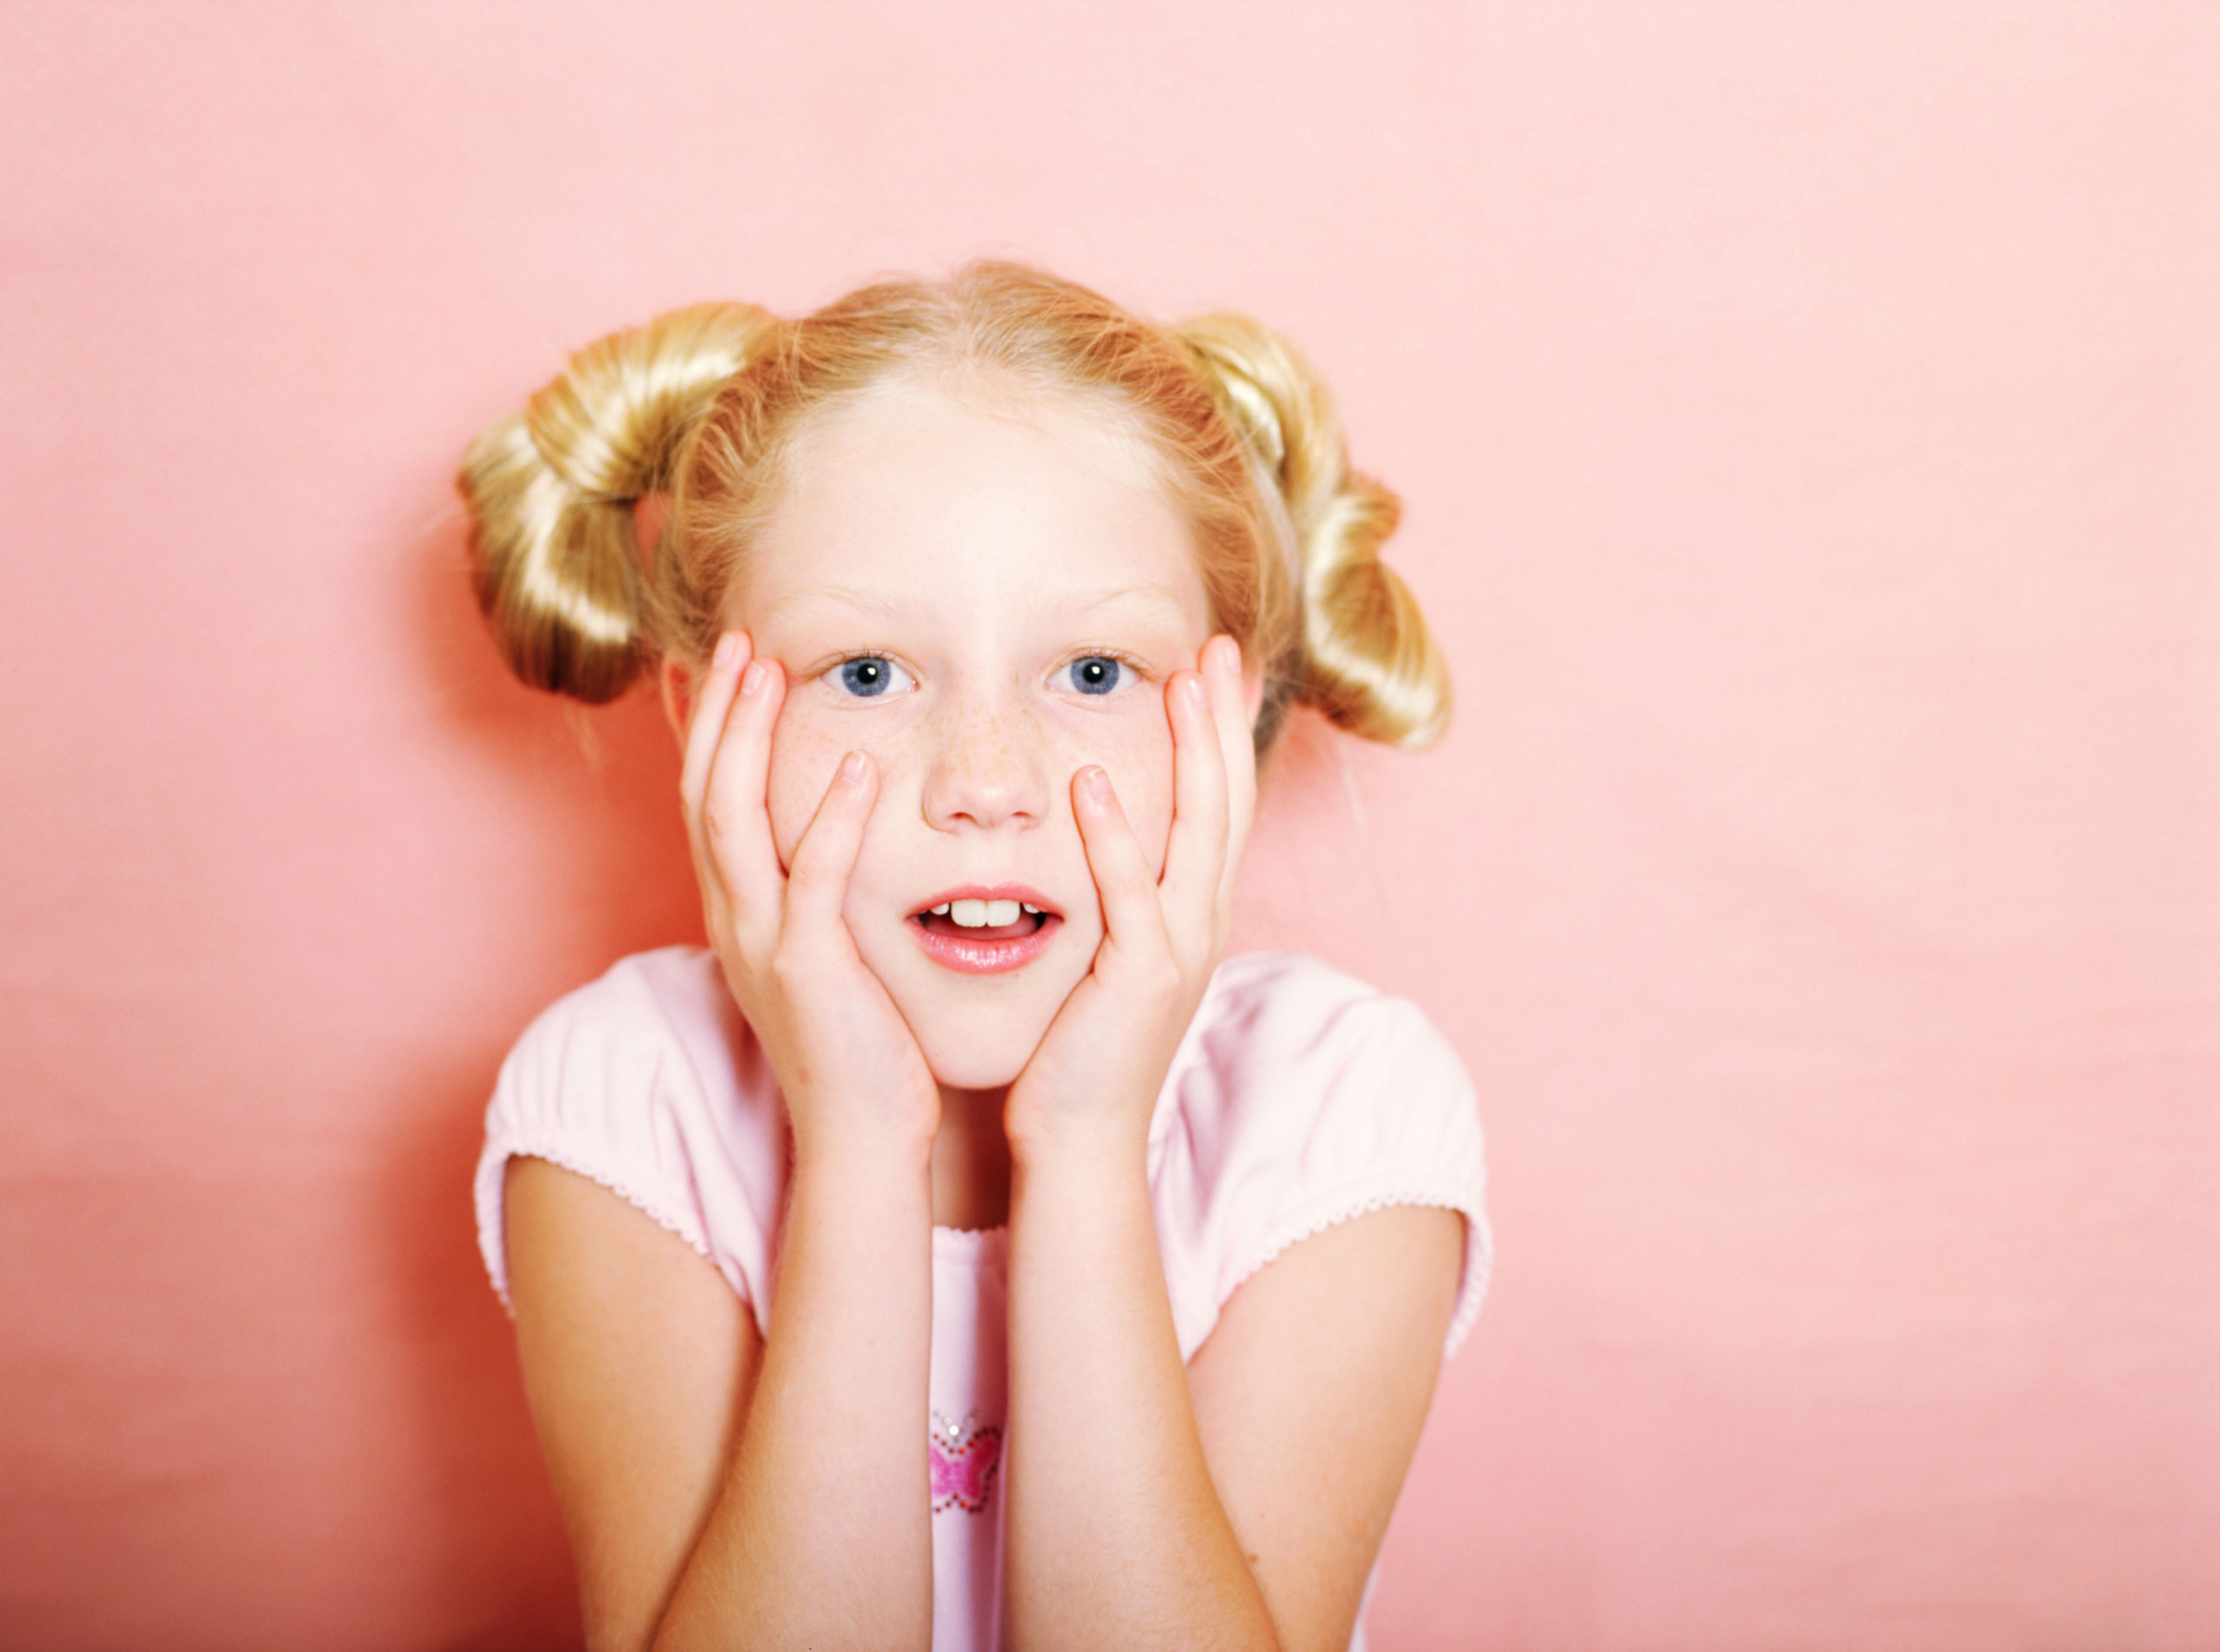 expressive blond girl with pigtails